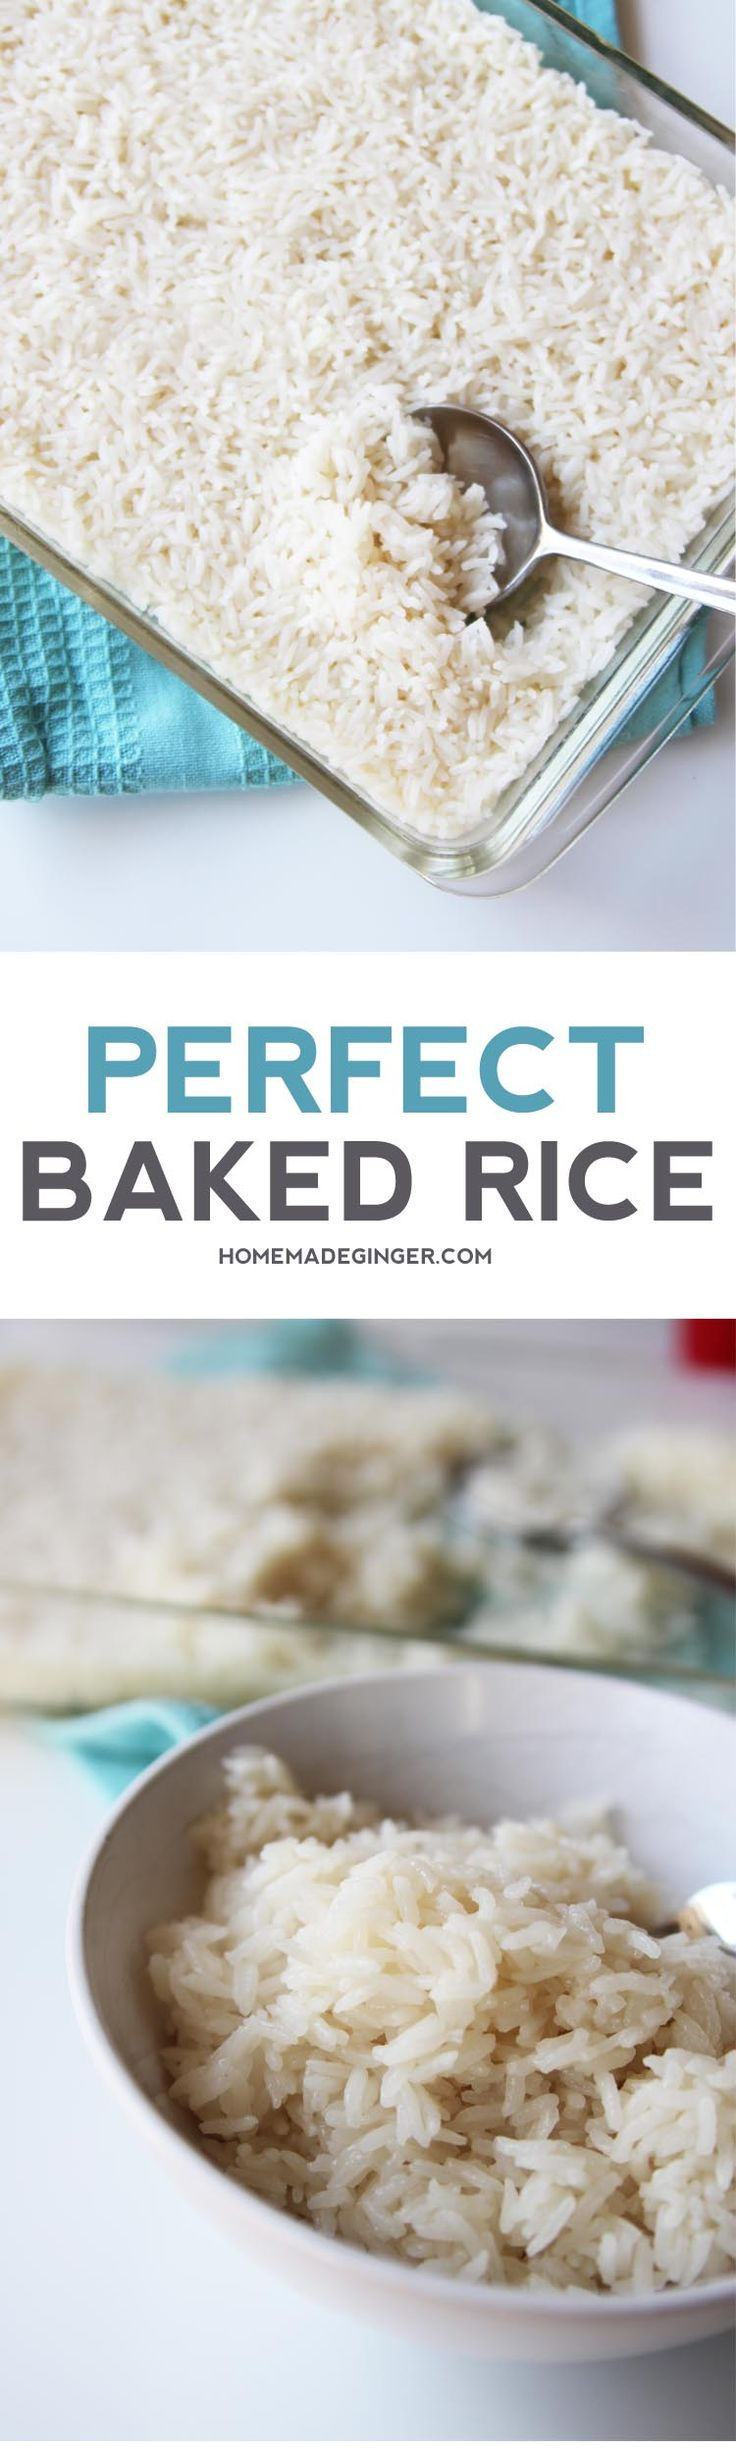 Who knew you could bake rice? It comes out perfect every time. You will never wonder how to make rice again!